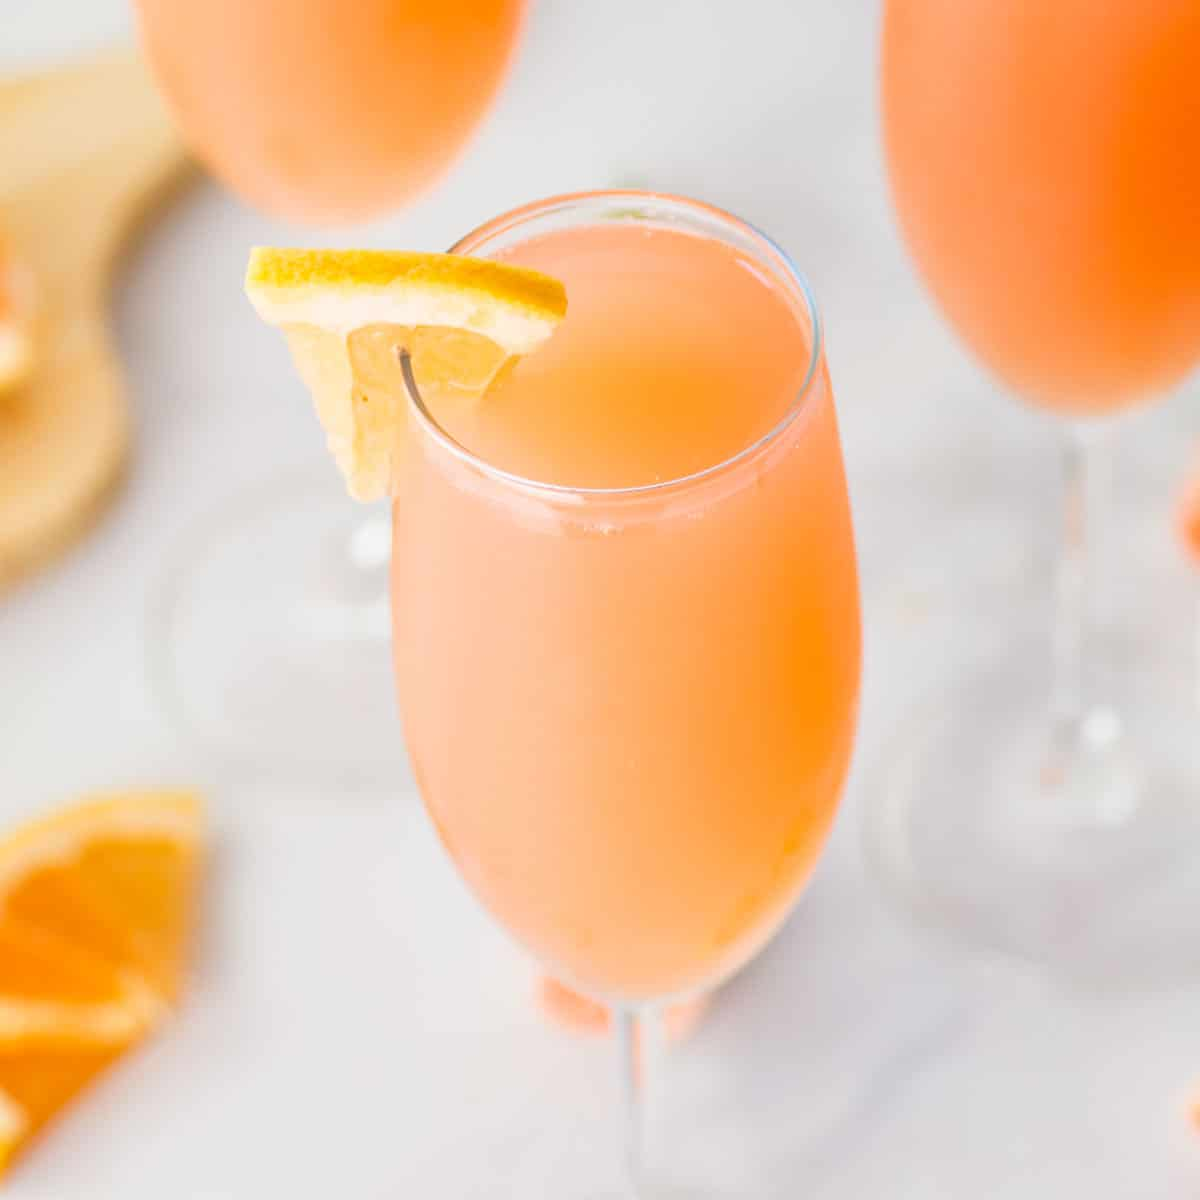 rose mimosa with grapefruit juice